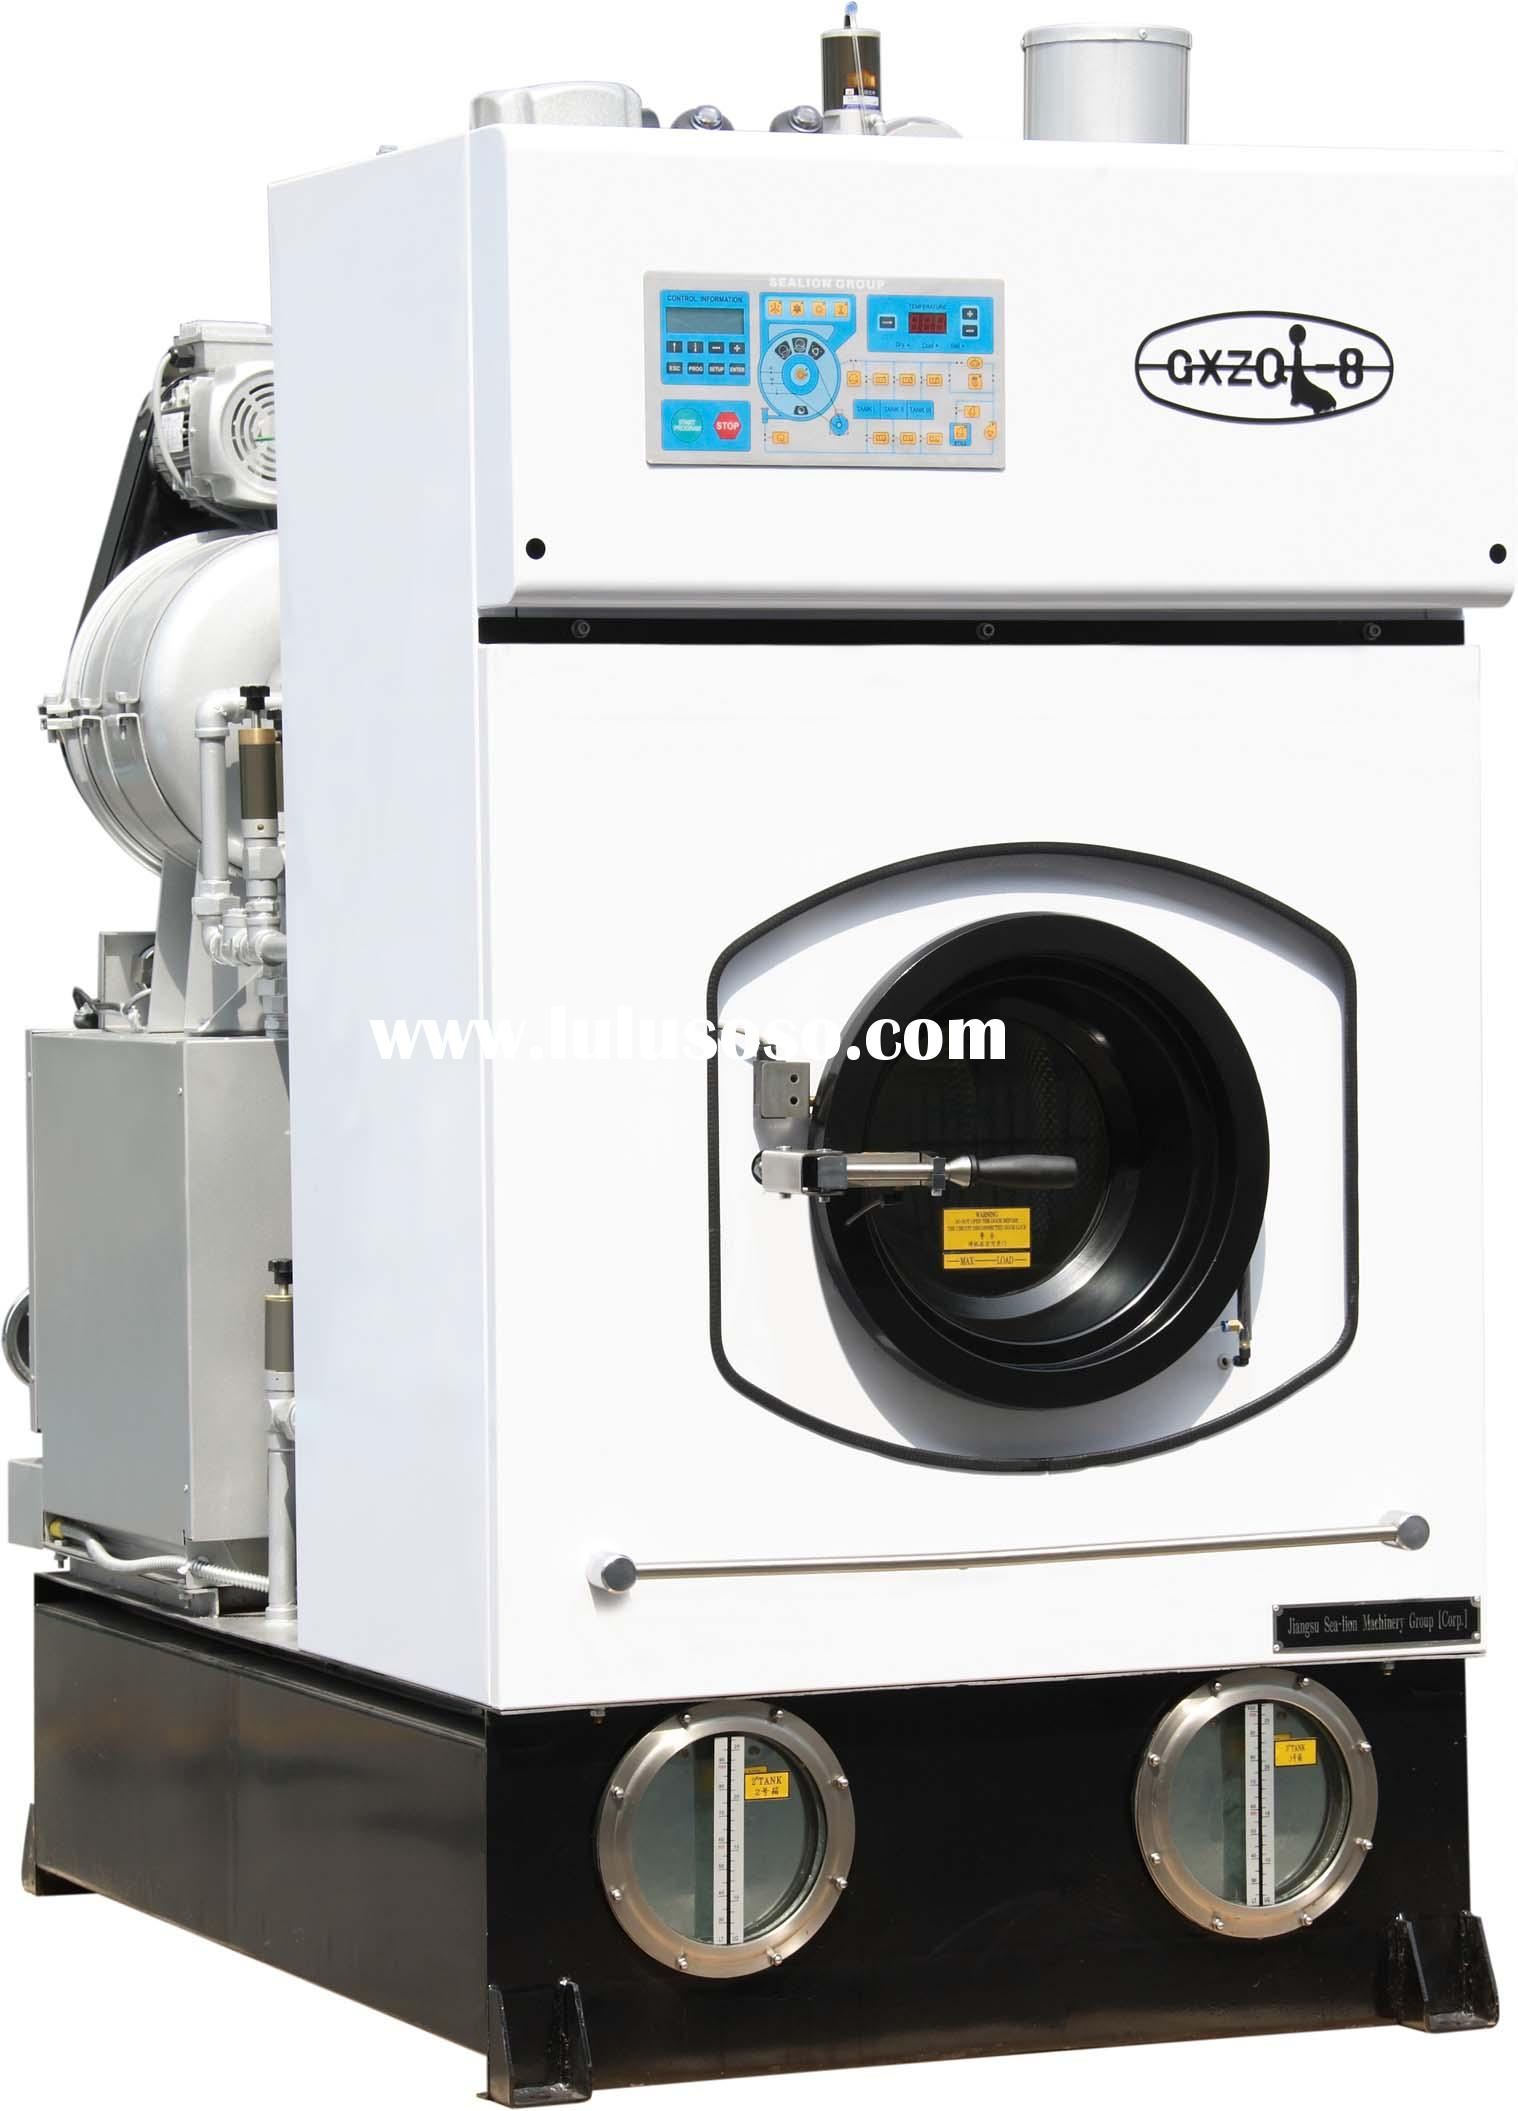 Sea-lion GXZQ-8 dry cleaning machine